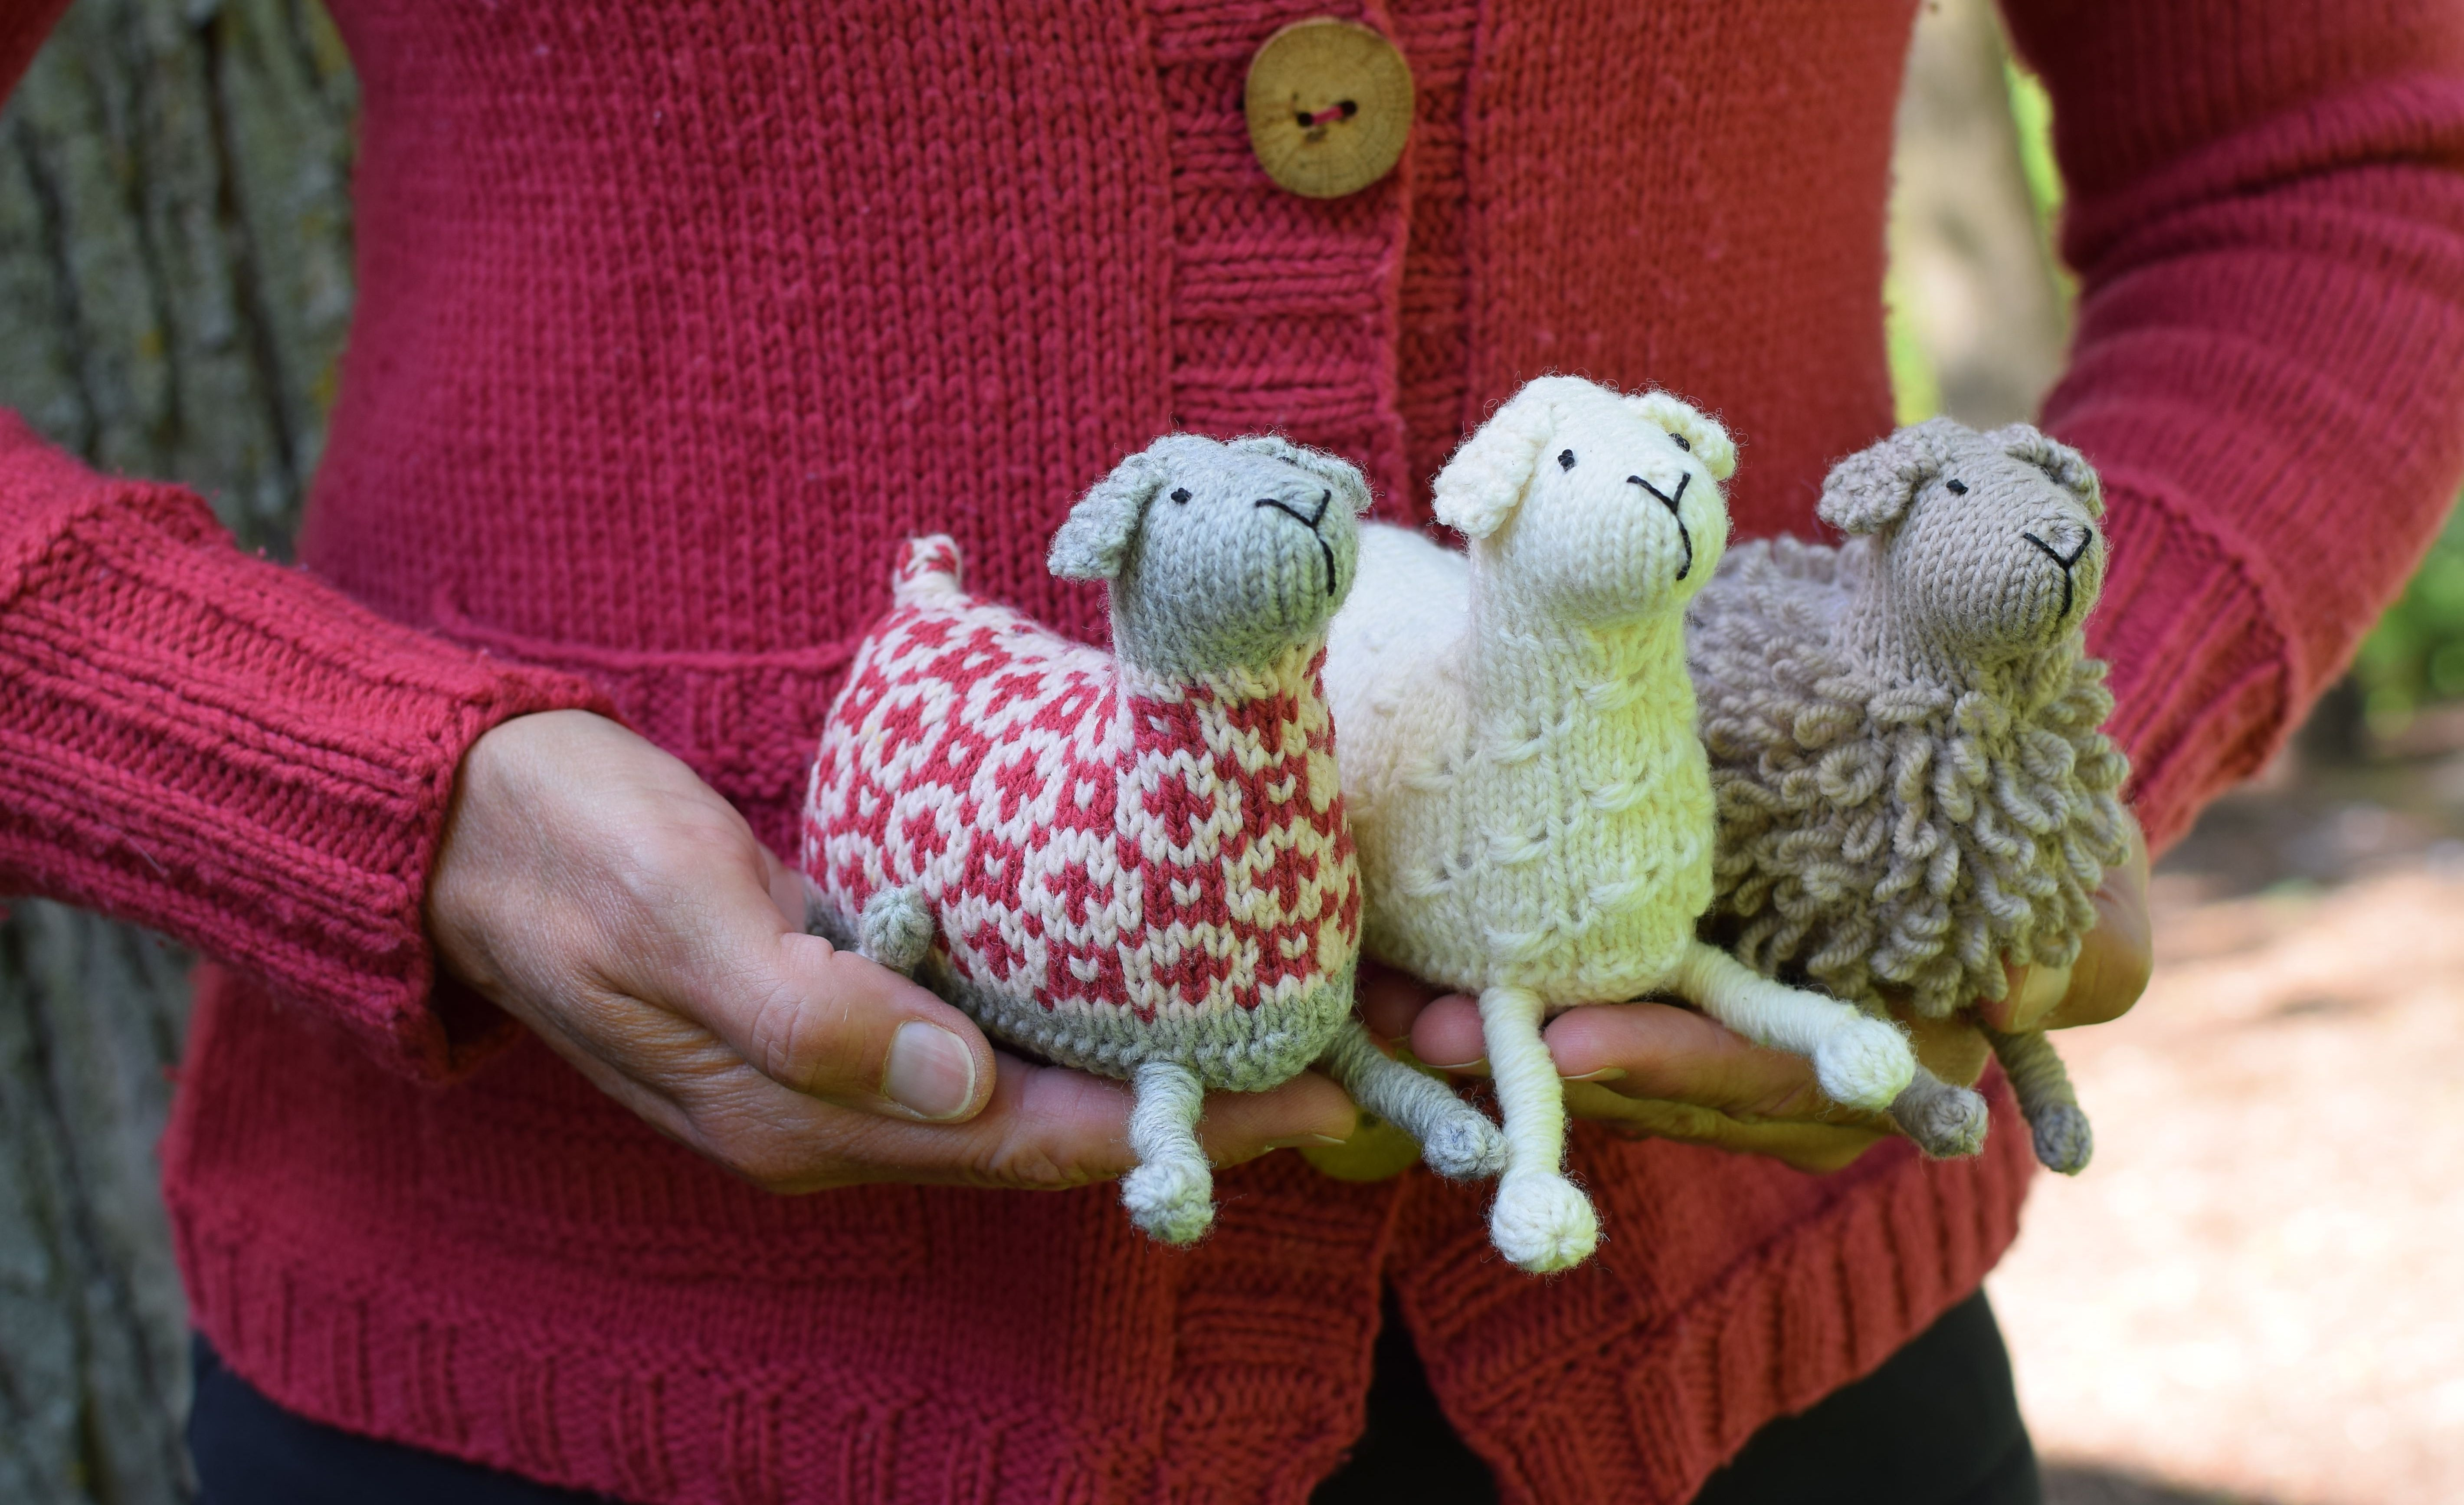 Sheep! A new pattern by Susan B. Anderson. Purchase the pattern here: http://www.ravelry.com/patterns/library/sheep-26